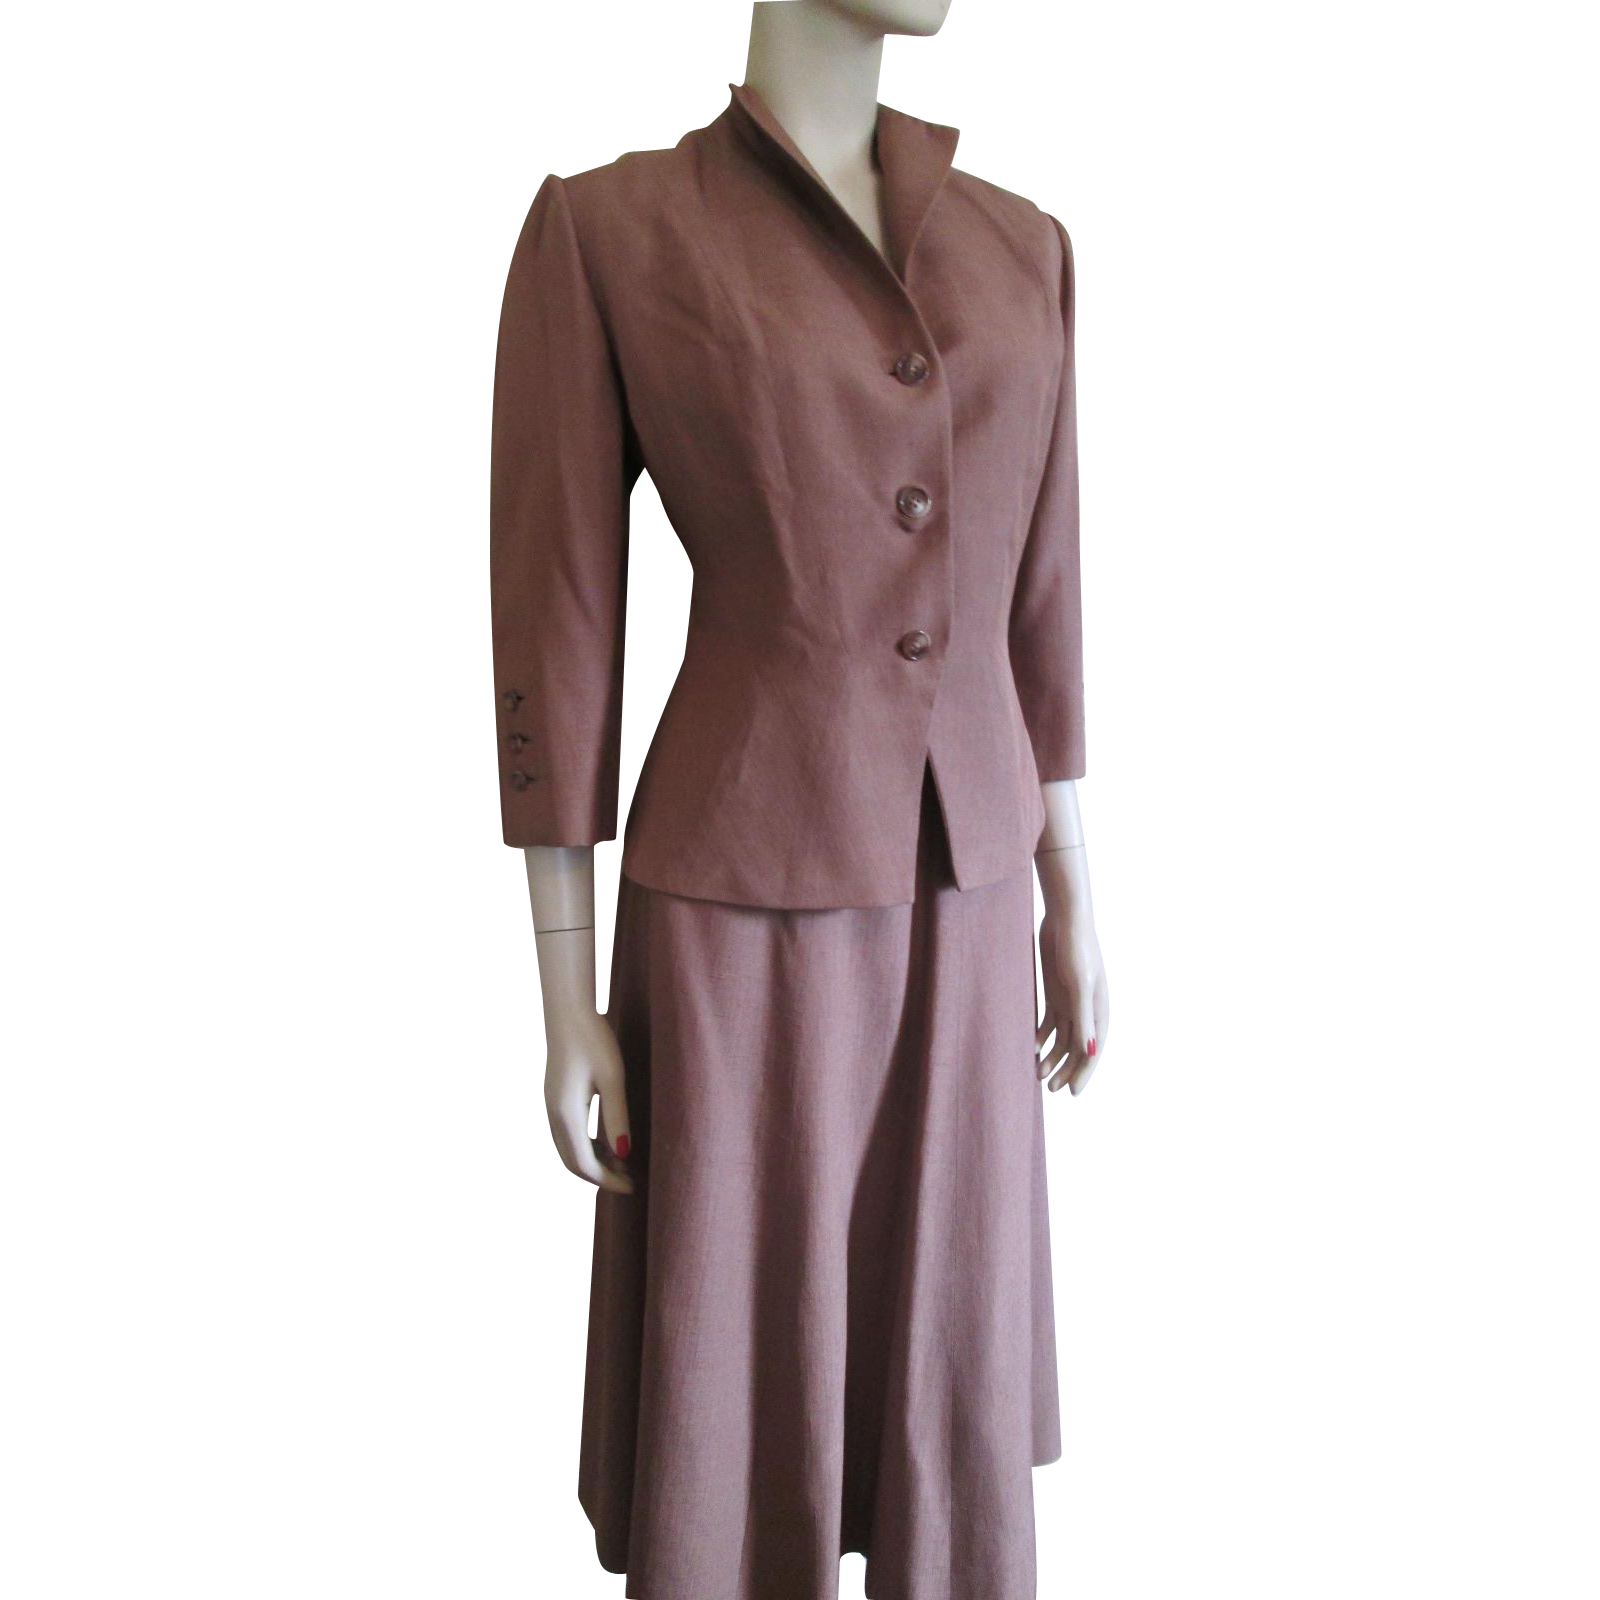 vintage 1940s dress suit womens cocoa brown tailored